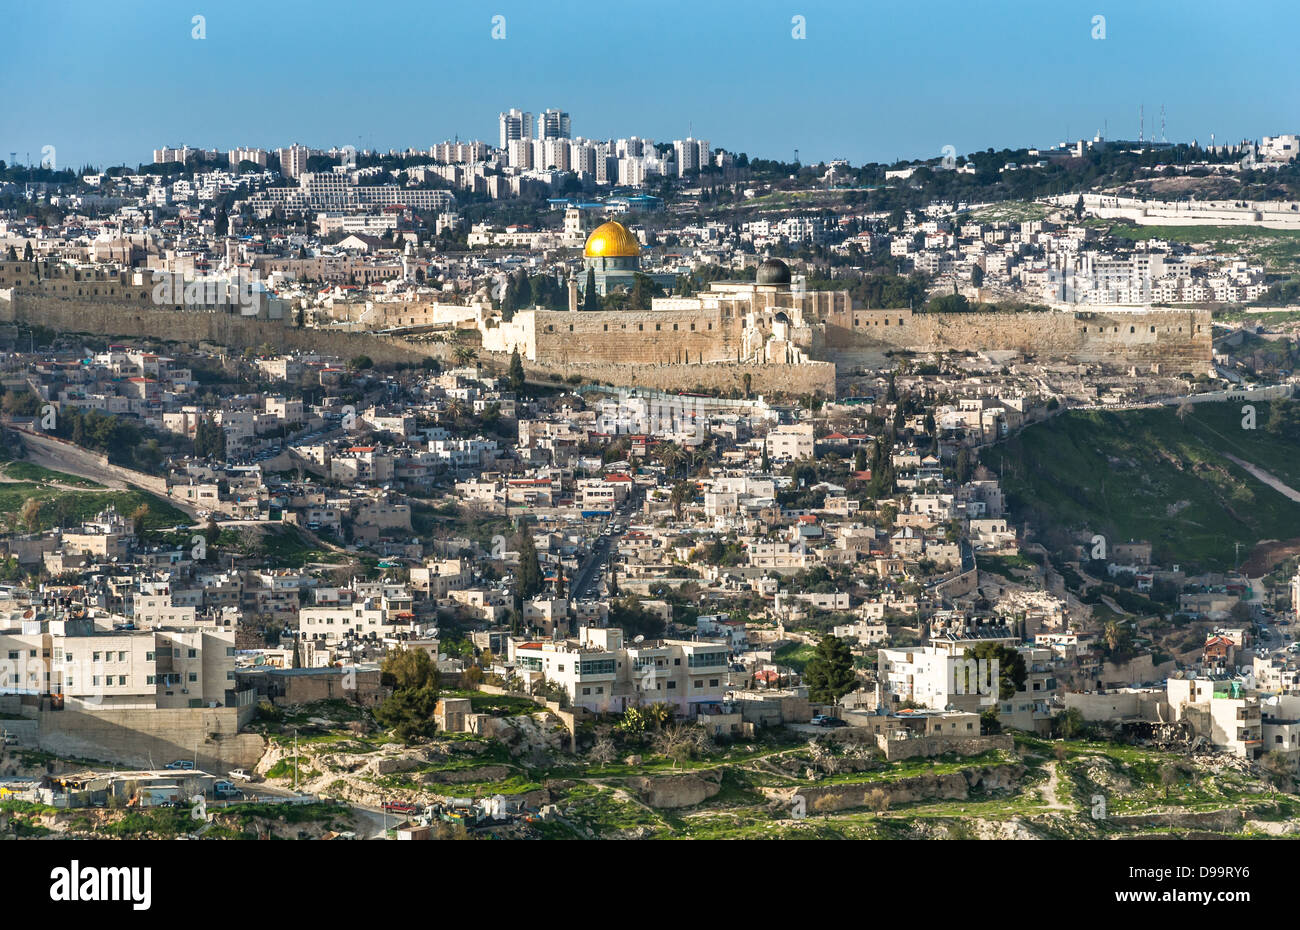 The Temple Mount, also know as Mount Moriah in Jerusalem, Israel  It is located in the Old City in Jerusalem and - Stock Image